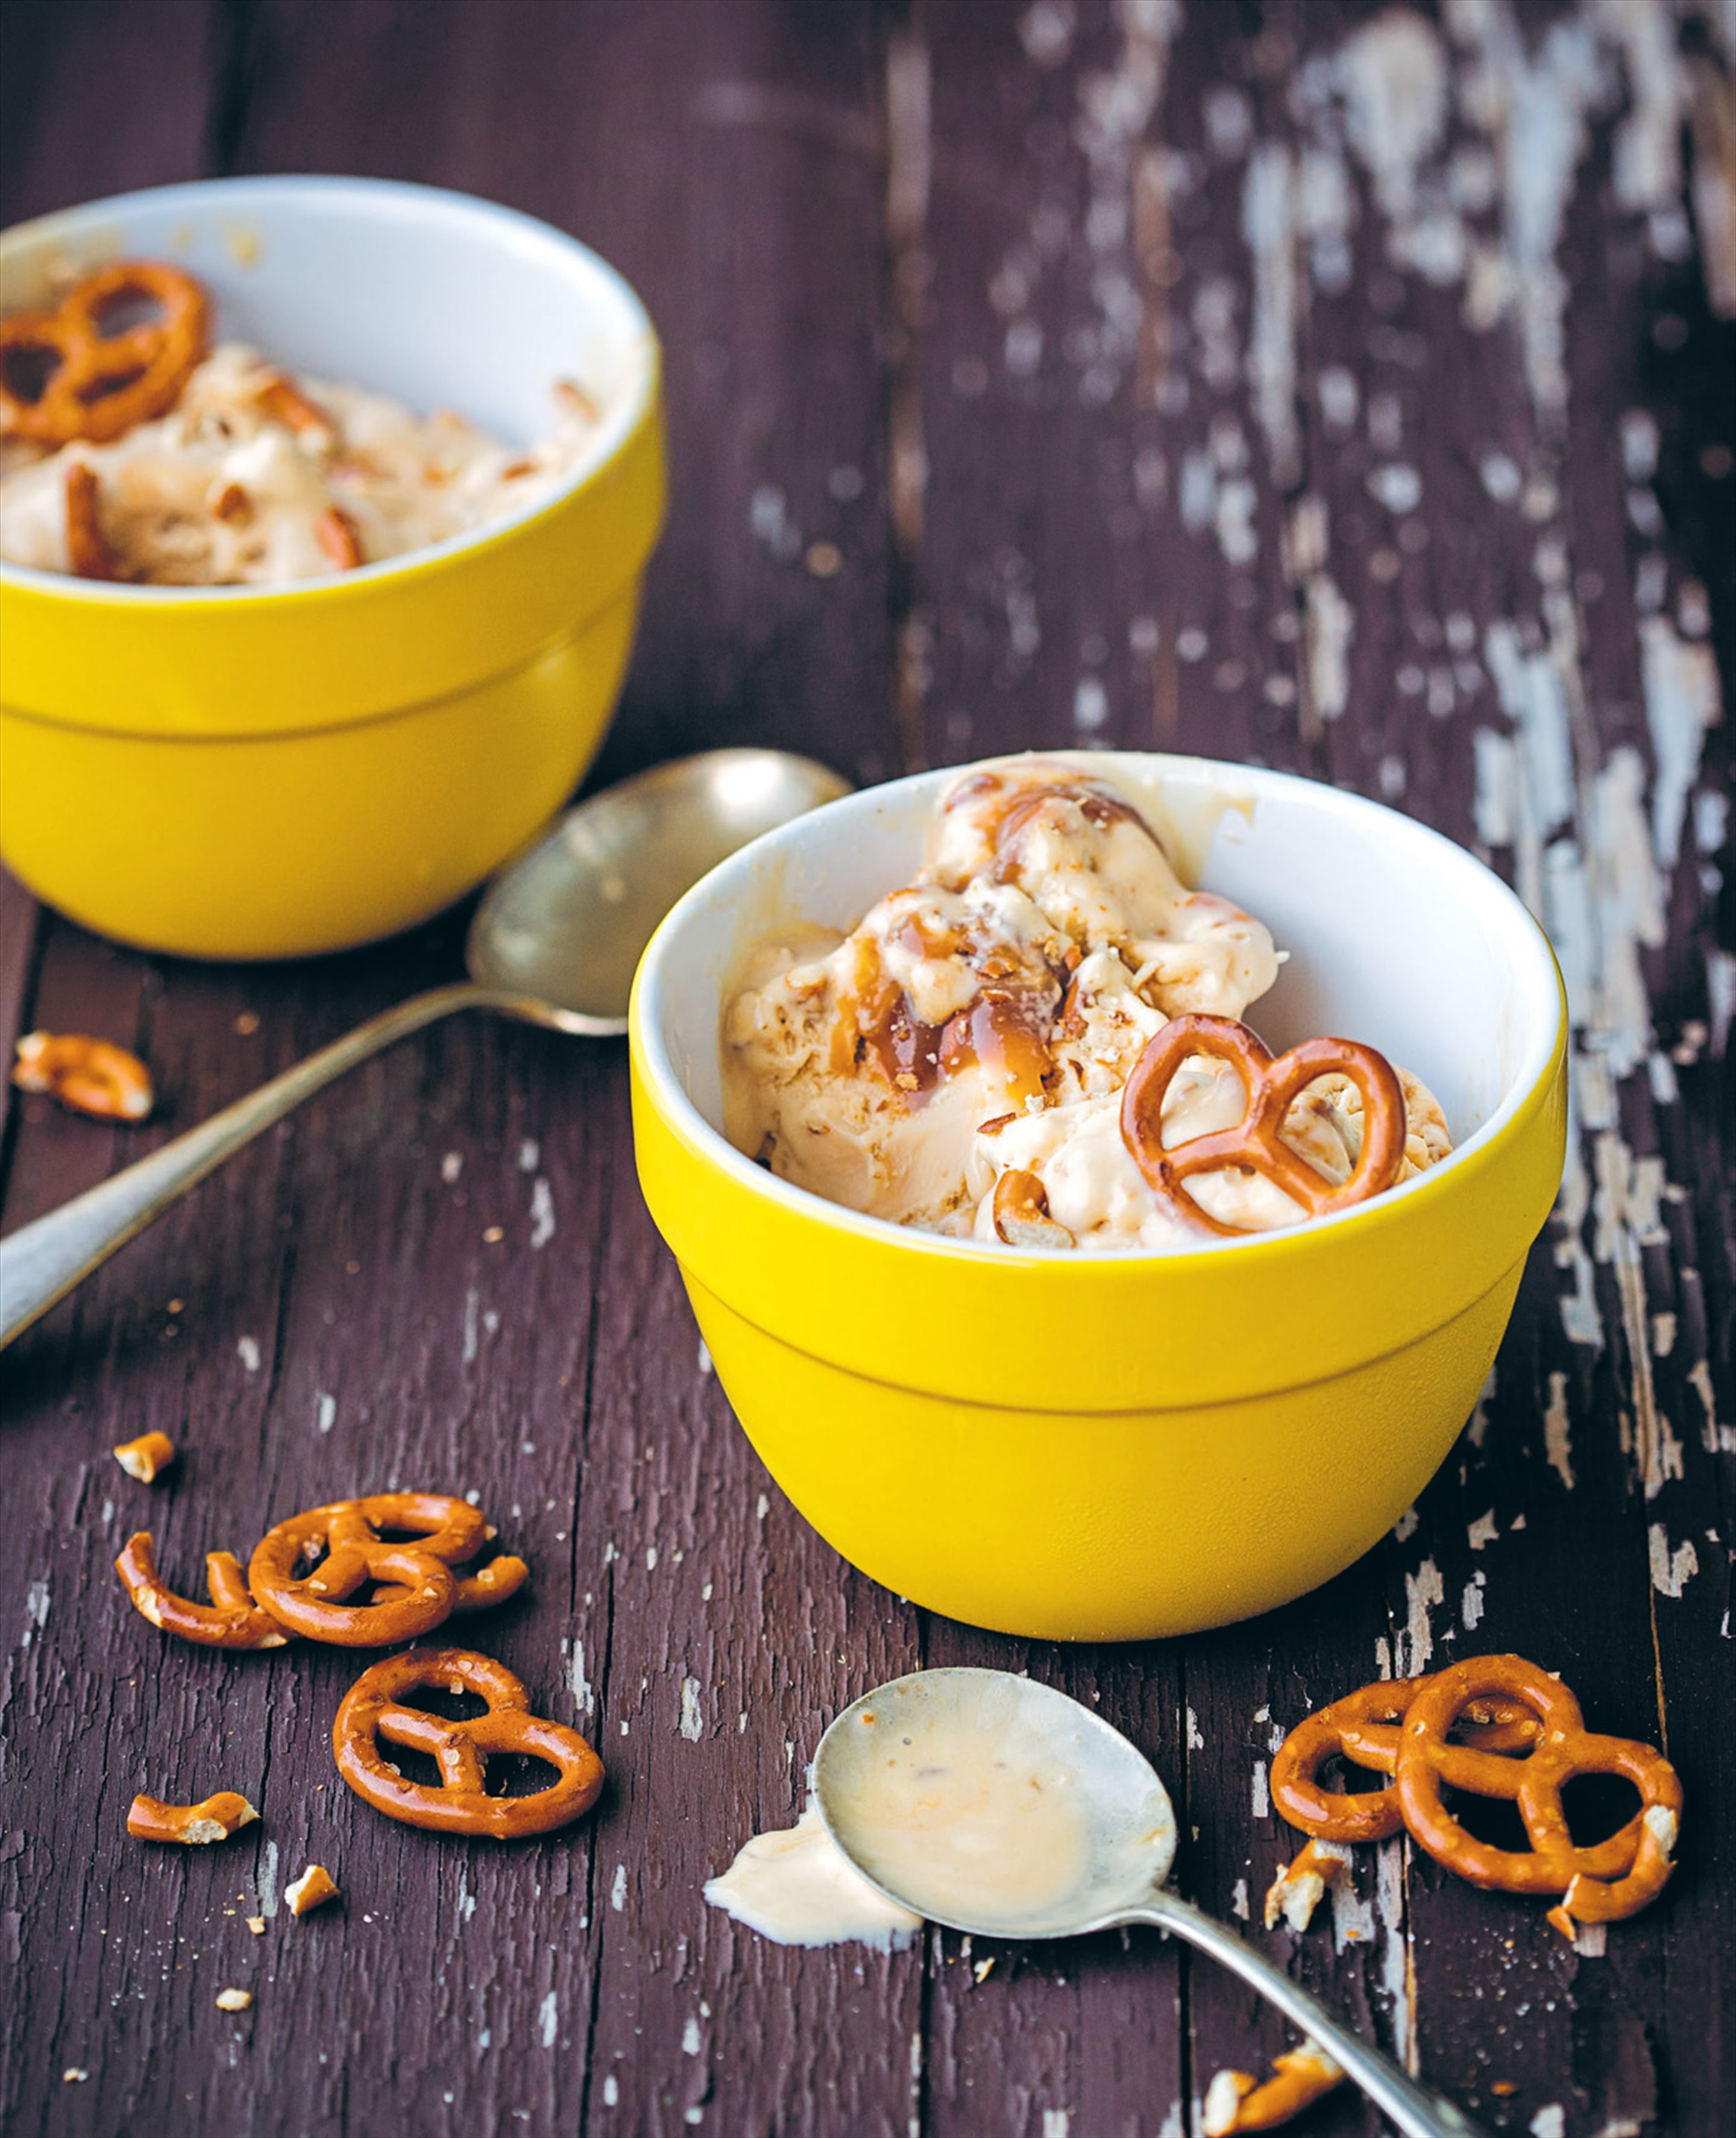 Pretzel and salted caramel ice cream